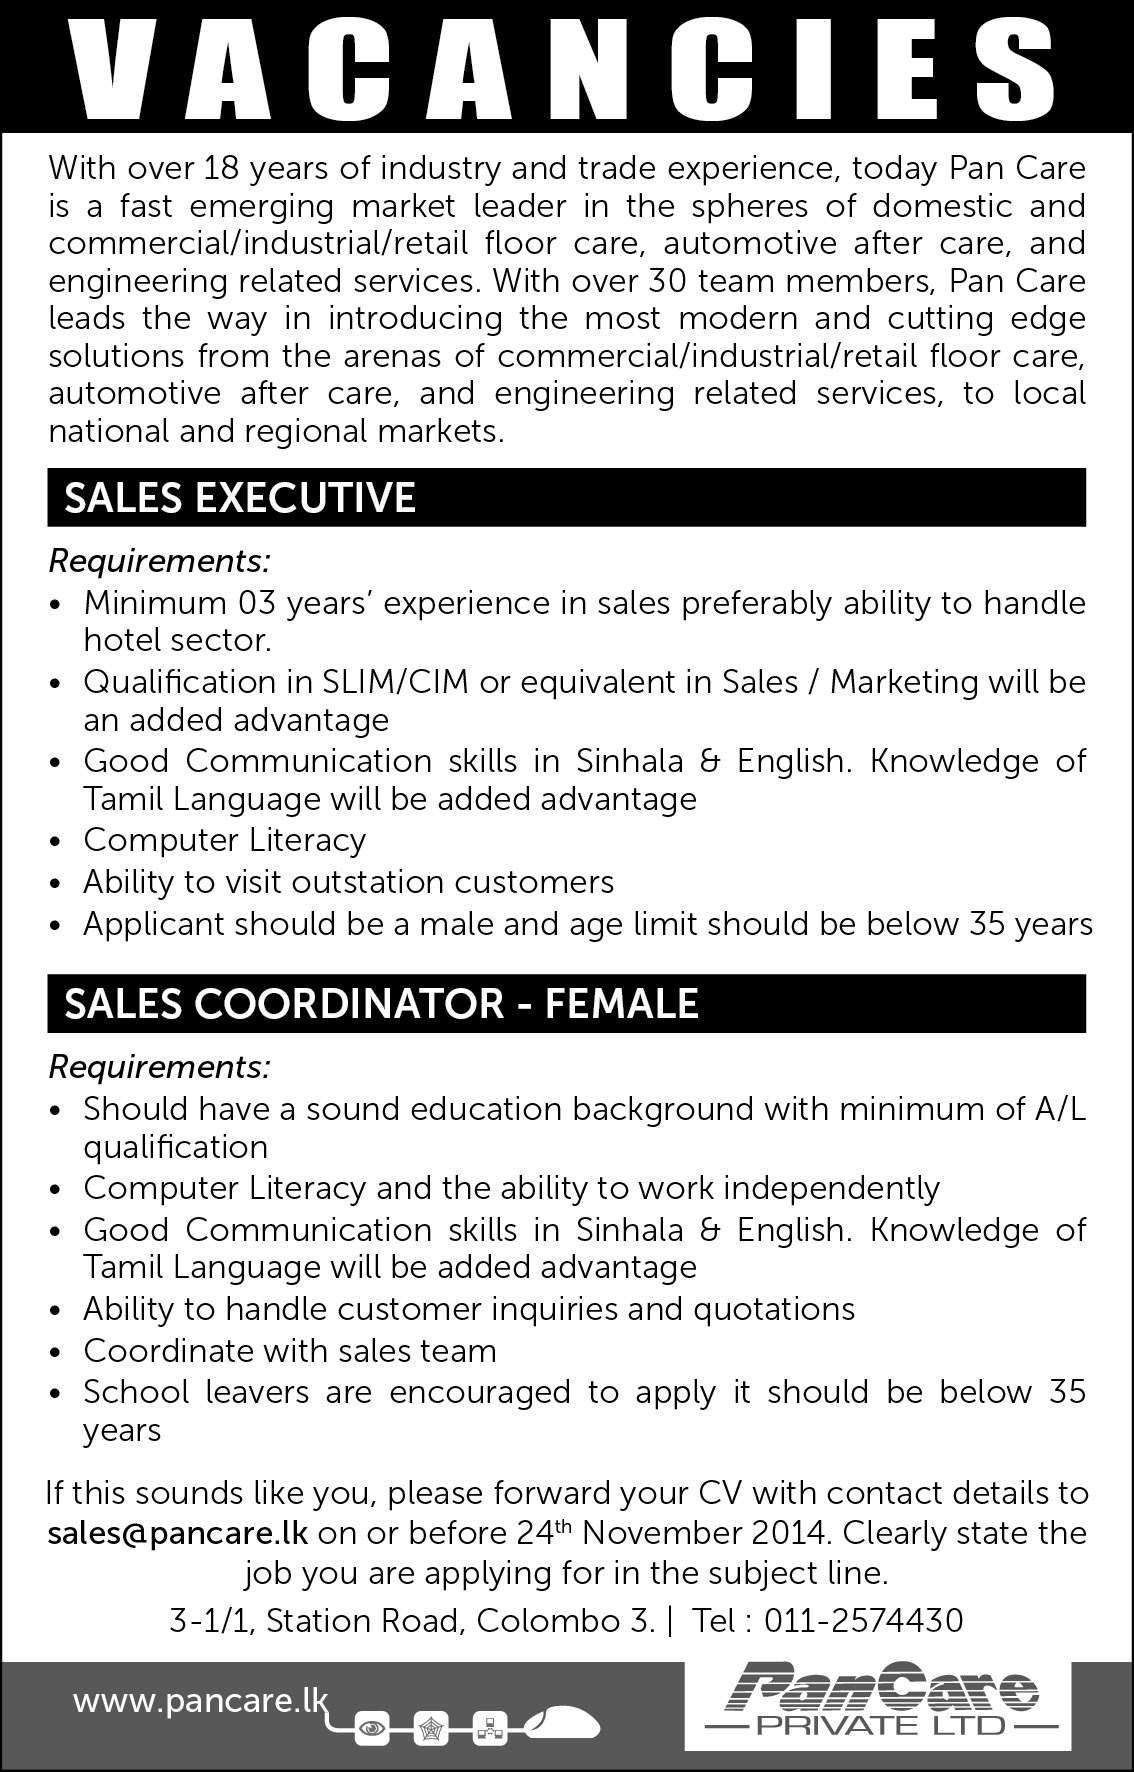 s executive s coordinator female job vacancy in sri lanka s executive minimum 03 years experience in s preferably ability to handle hotel sector qualification in slim cim or equivalent in s